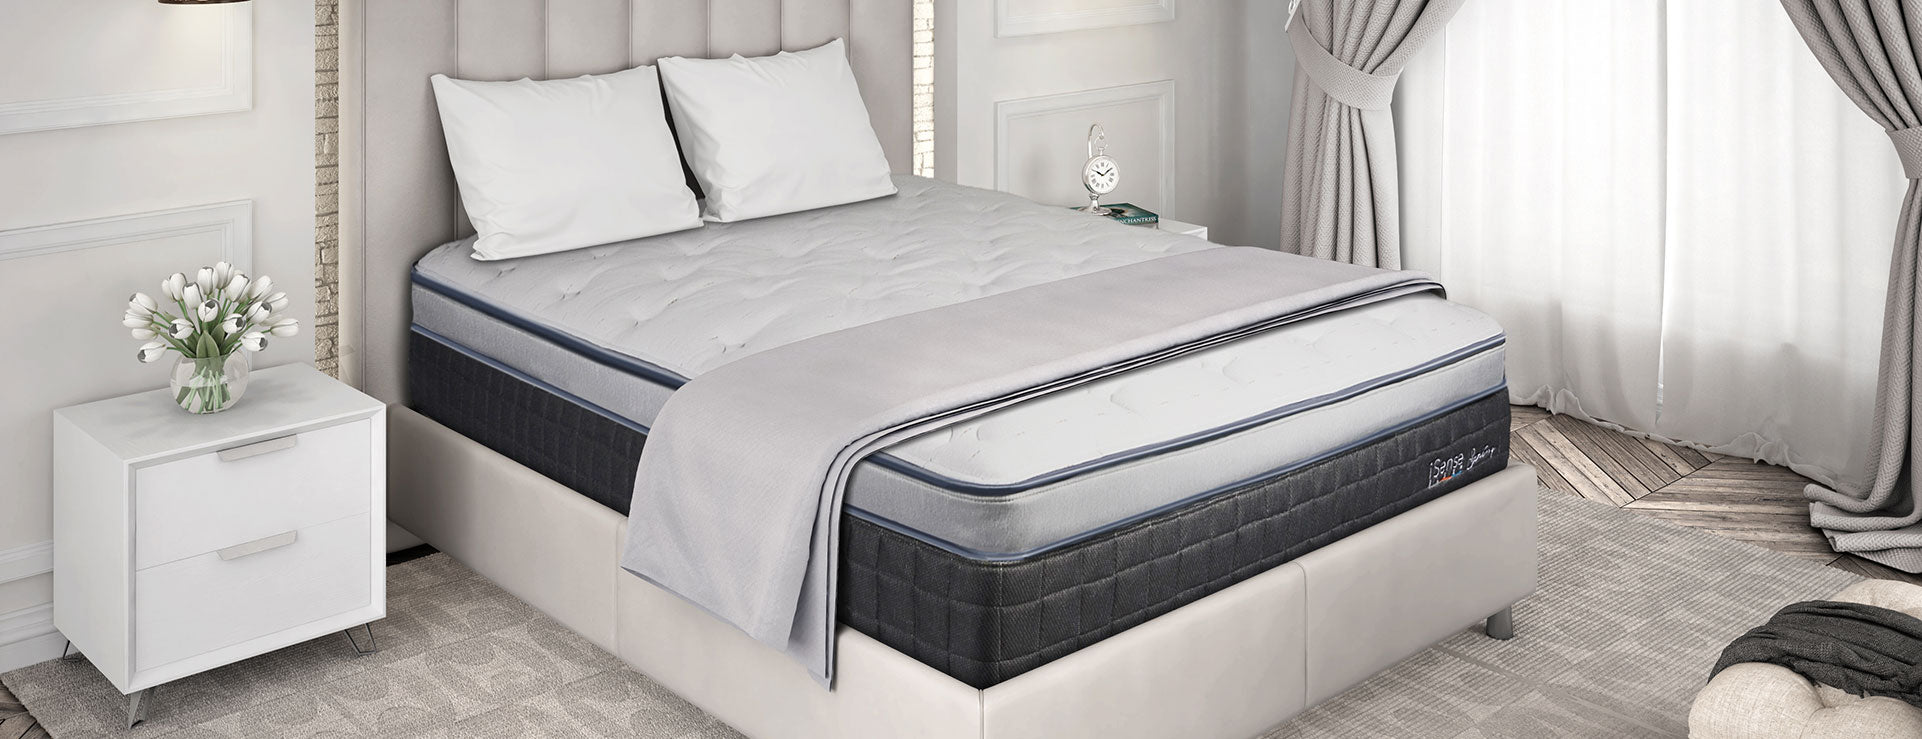 COMFORT CONTROL Spring Mattress - King Split